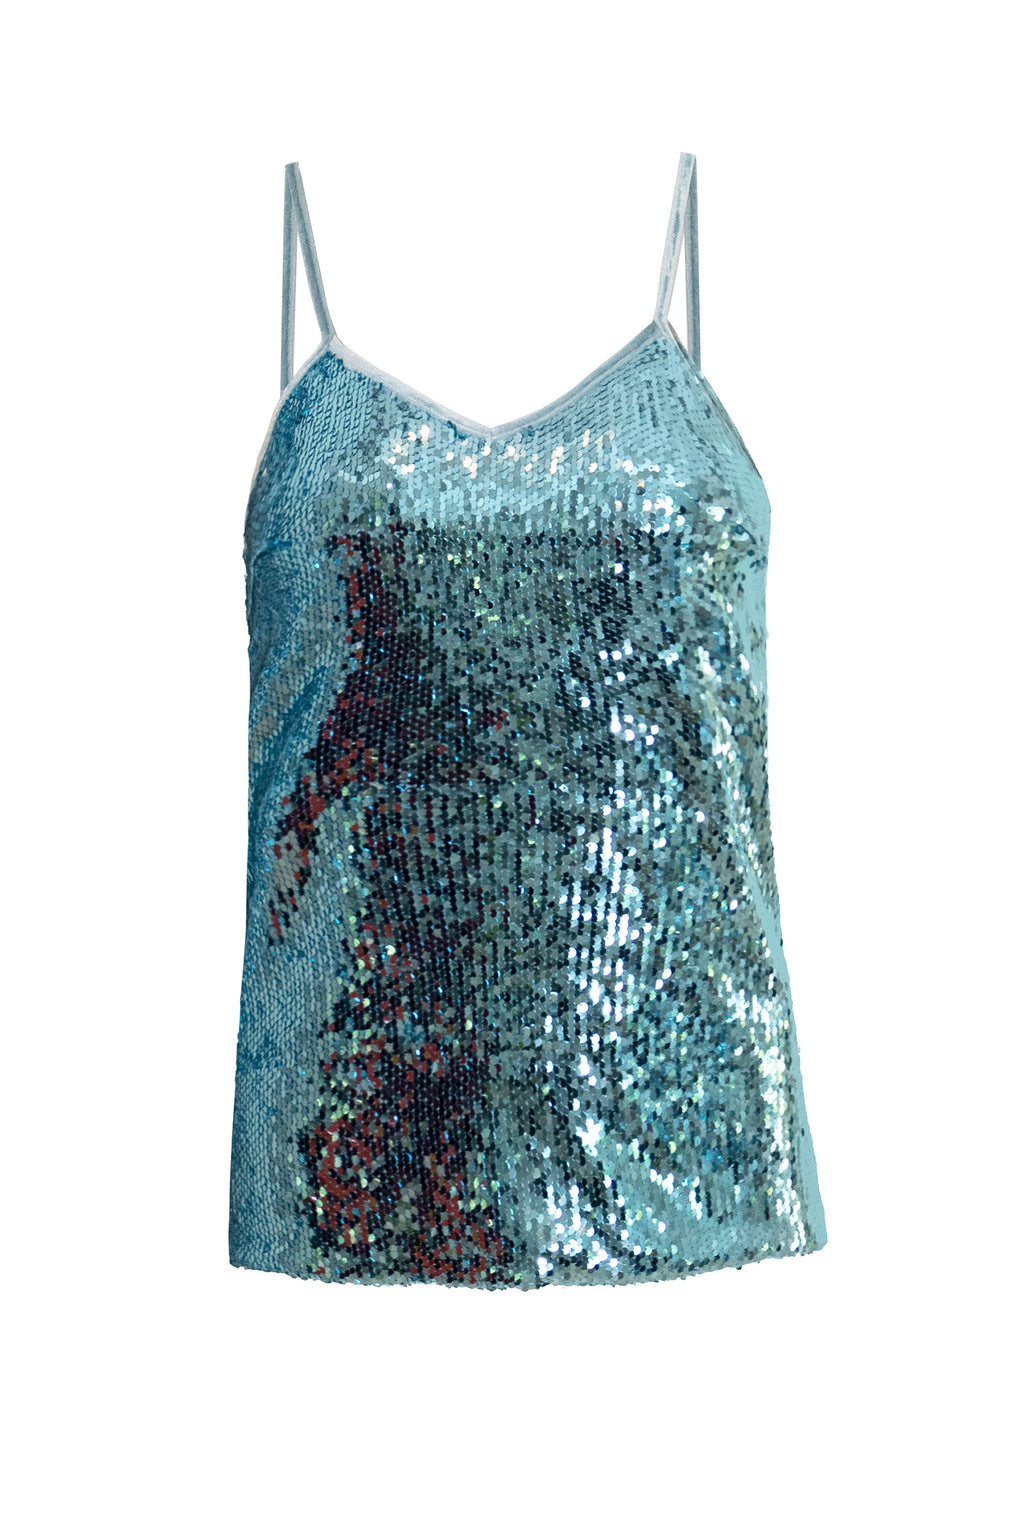 Ilona Rich Blue & Silver Sequin Cami Top